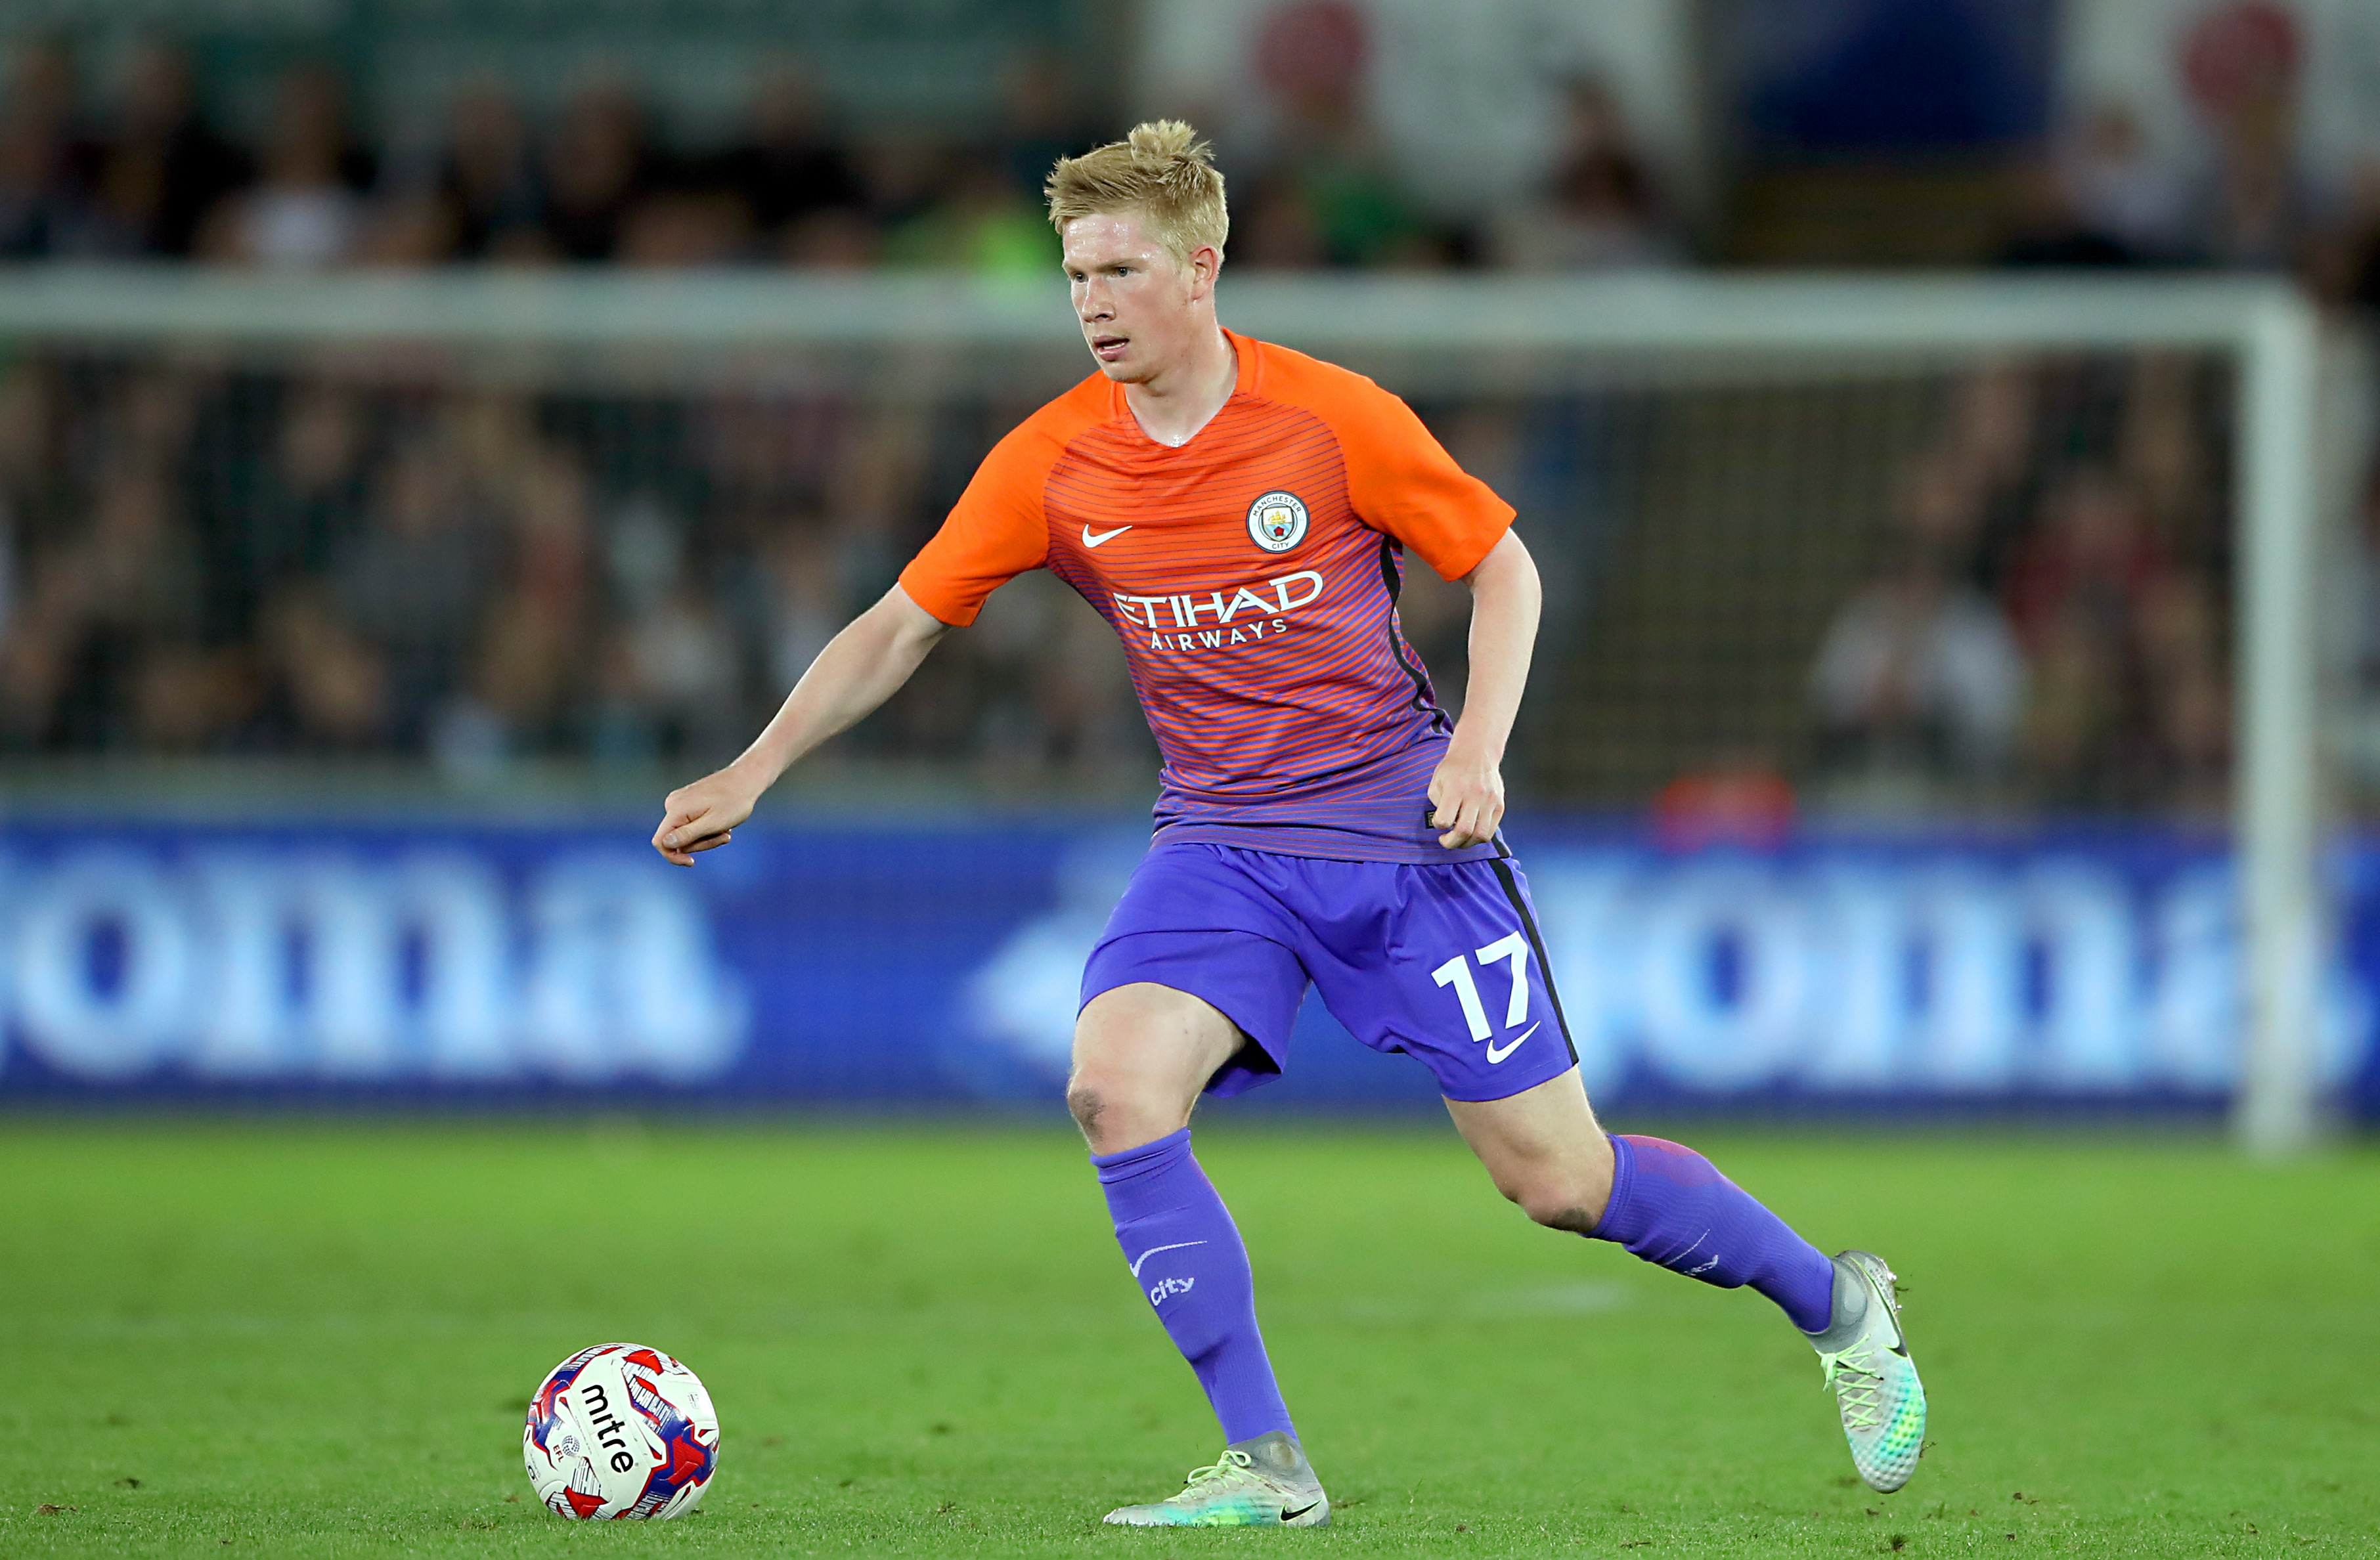 De Bruyne has become arguably City's most important player since signing for the club in 2015. Images PA